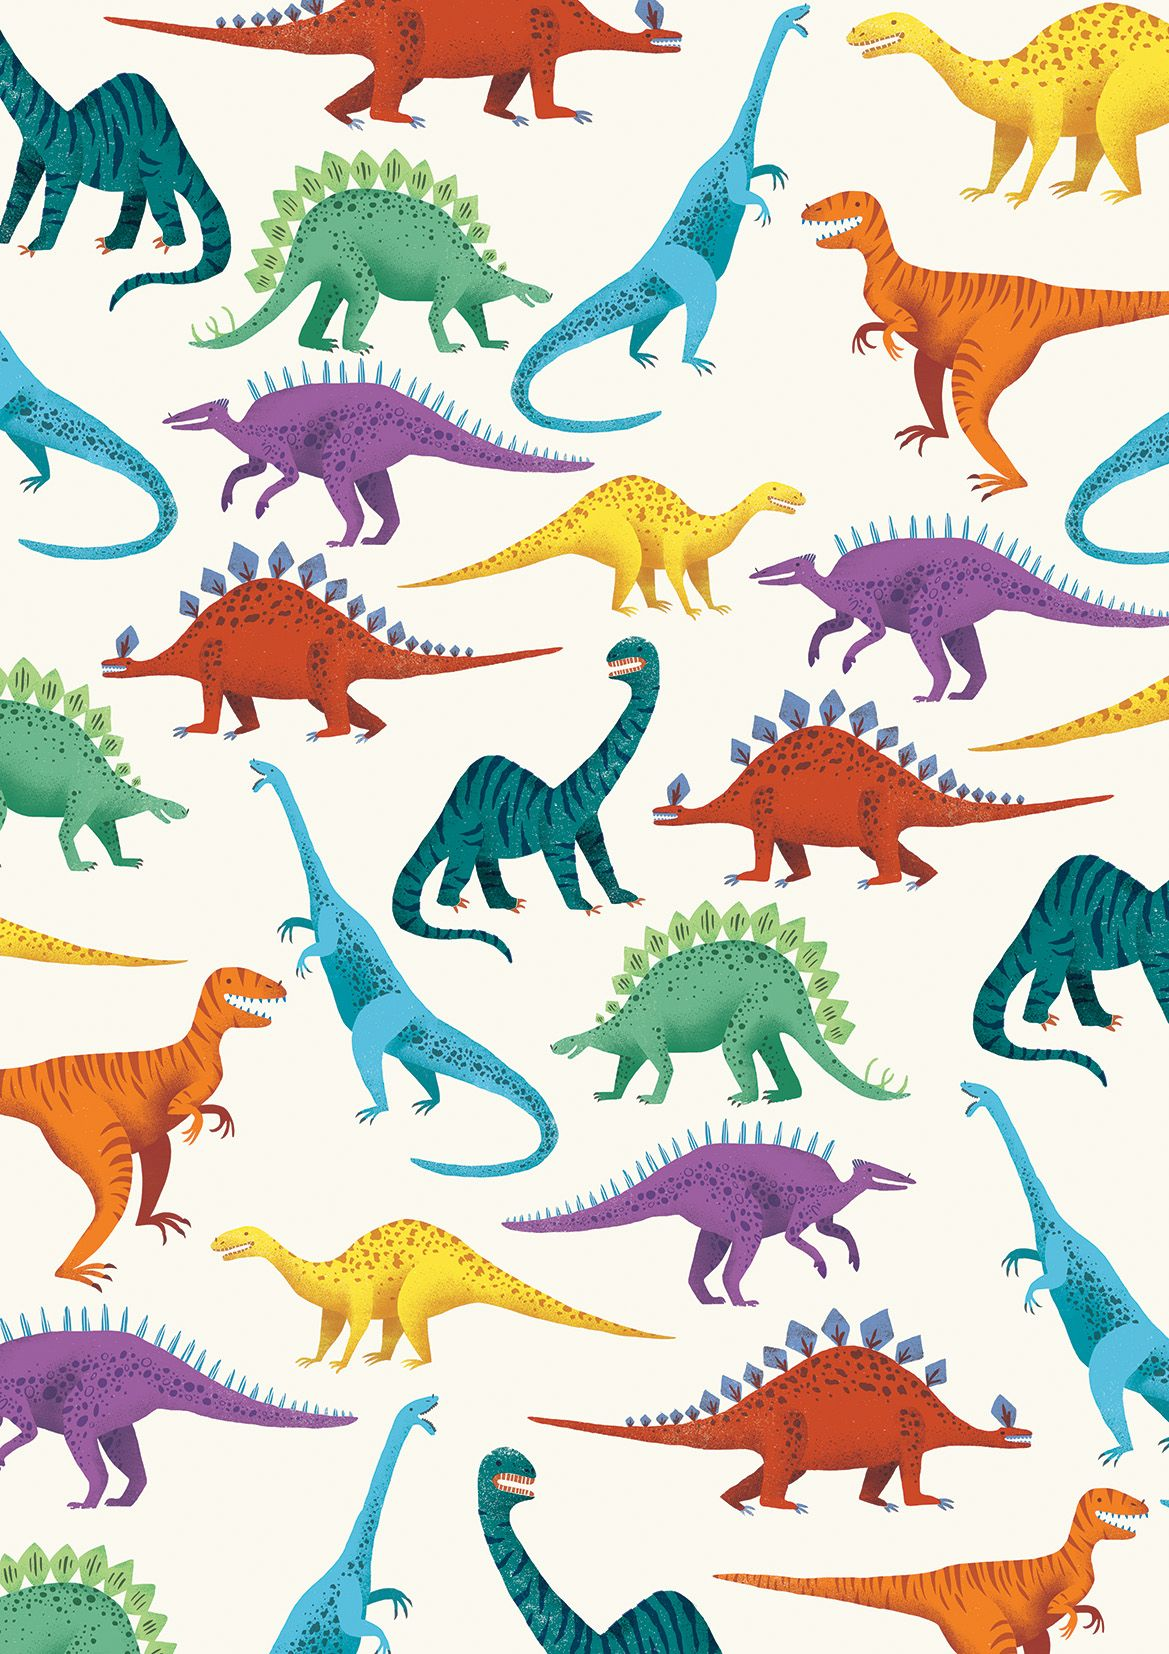 Rachael Saunders #illustration #dinosaurs #patterns #children #wallpaper #rainbow #t-rex #diplodocus #dinosaurillustration